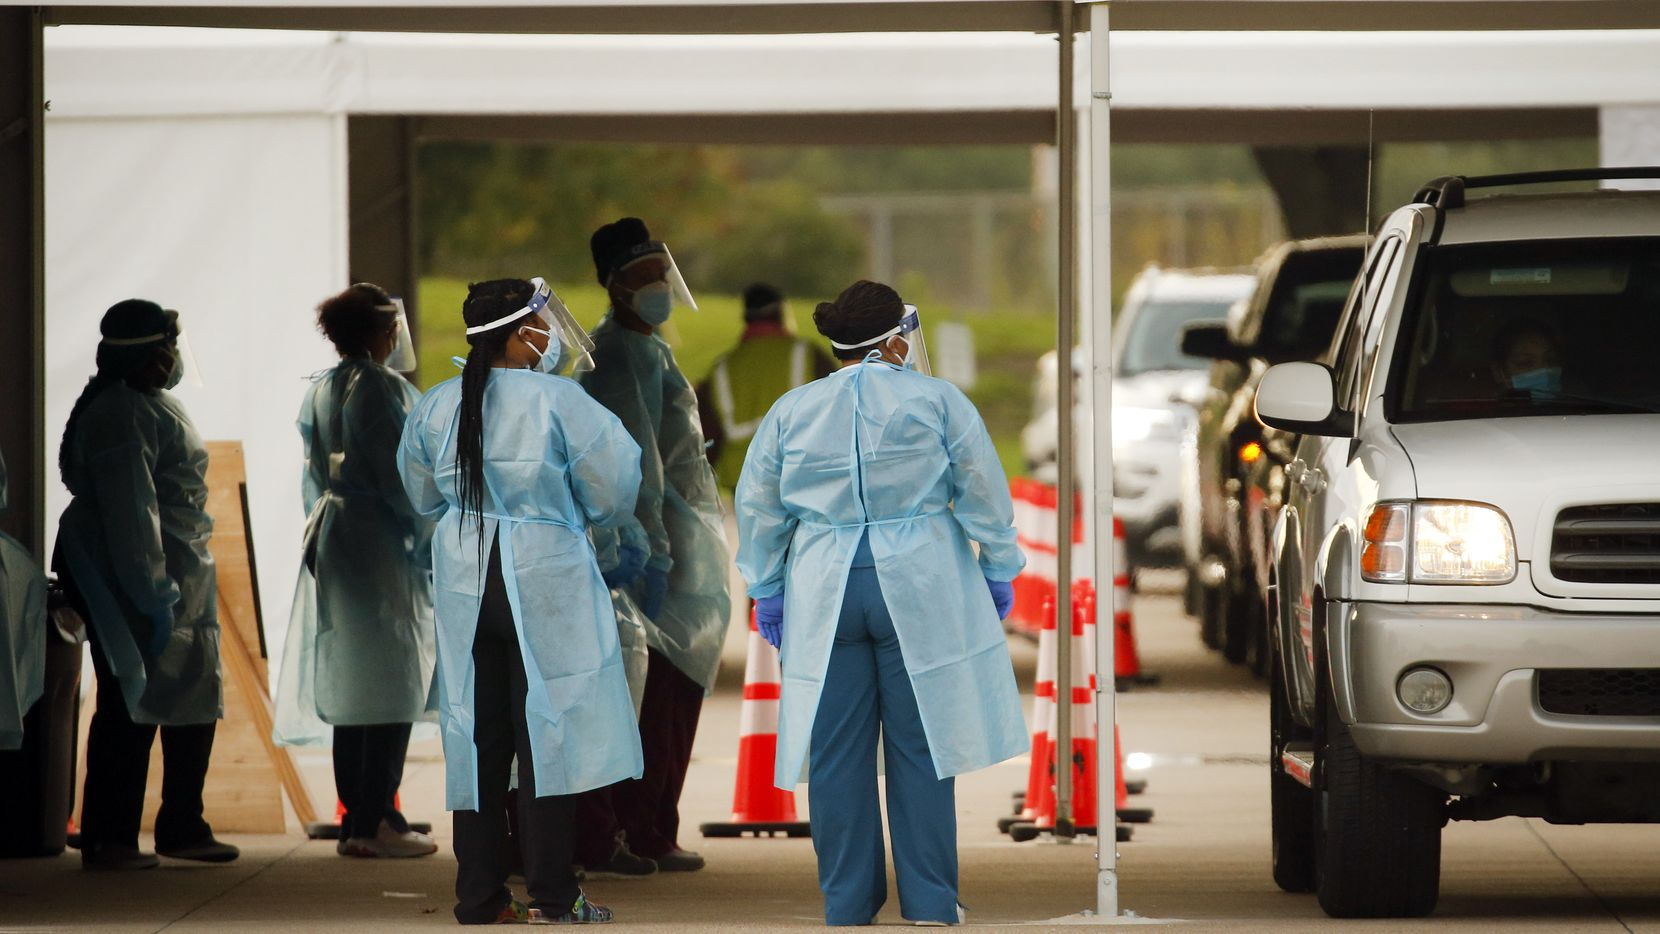 Medical personnel prep and conduct nasal swab tests at a drive-thru COVID-19 testing site at Dallas College Eastfield Campus in Mesquite, Monday, August 3, 2020. The mobile testing center moved from the University of Dallas to Eastfield. (Tom Fox/The Dallas Morning News)